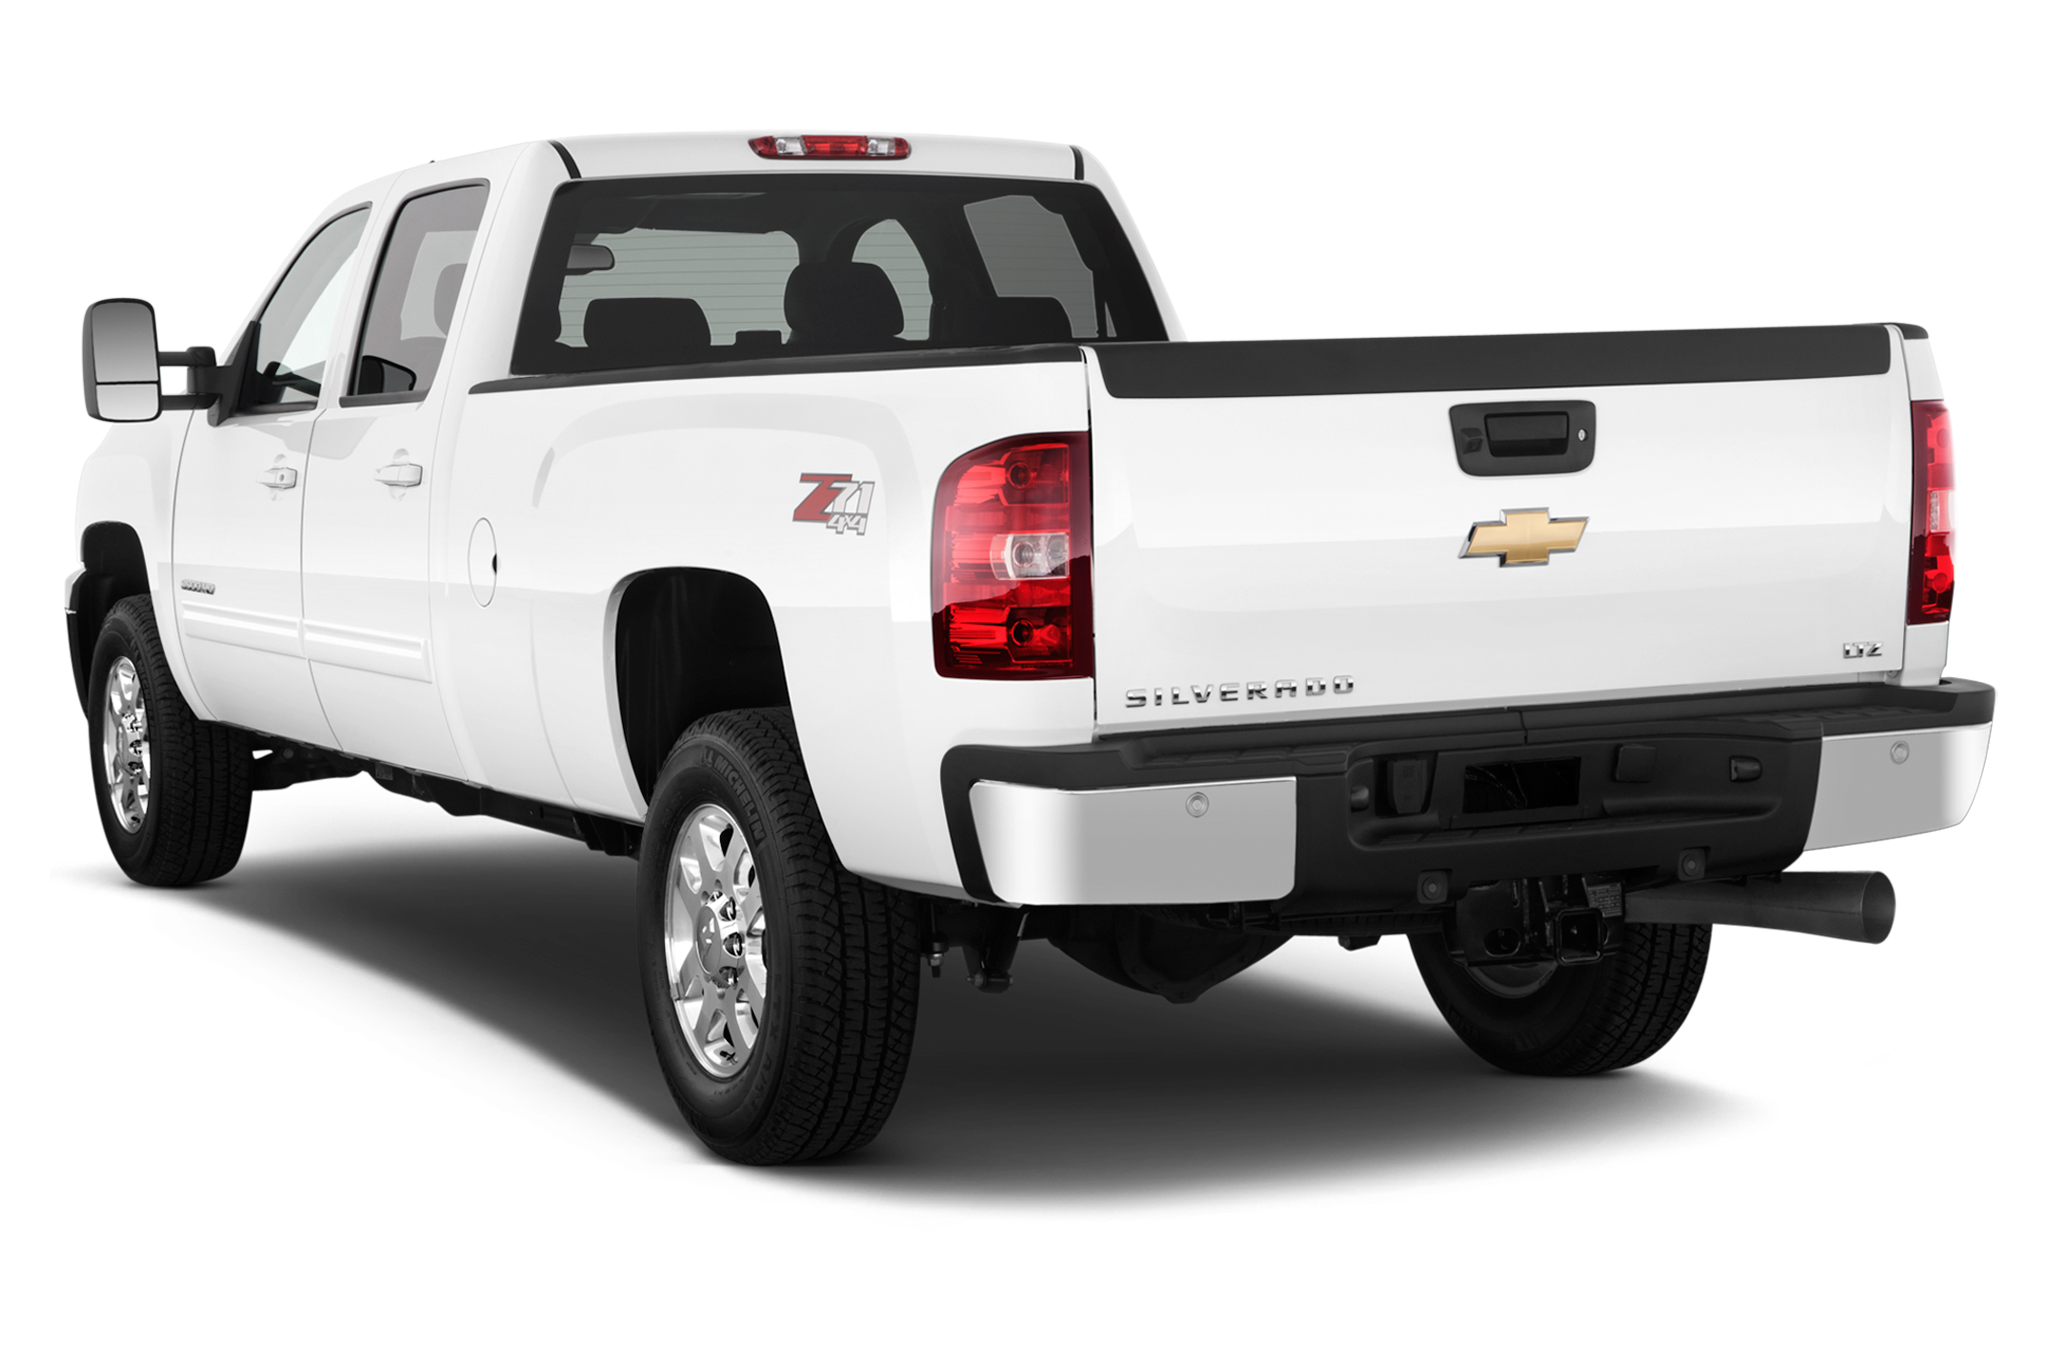 Chevy drawing truck chevrolet. Colorado lands on